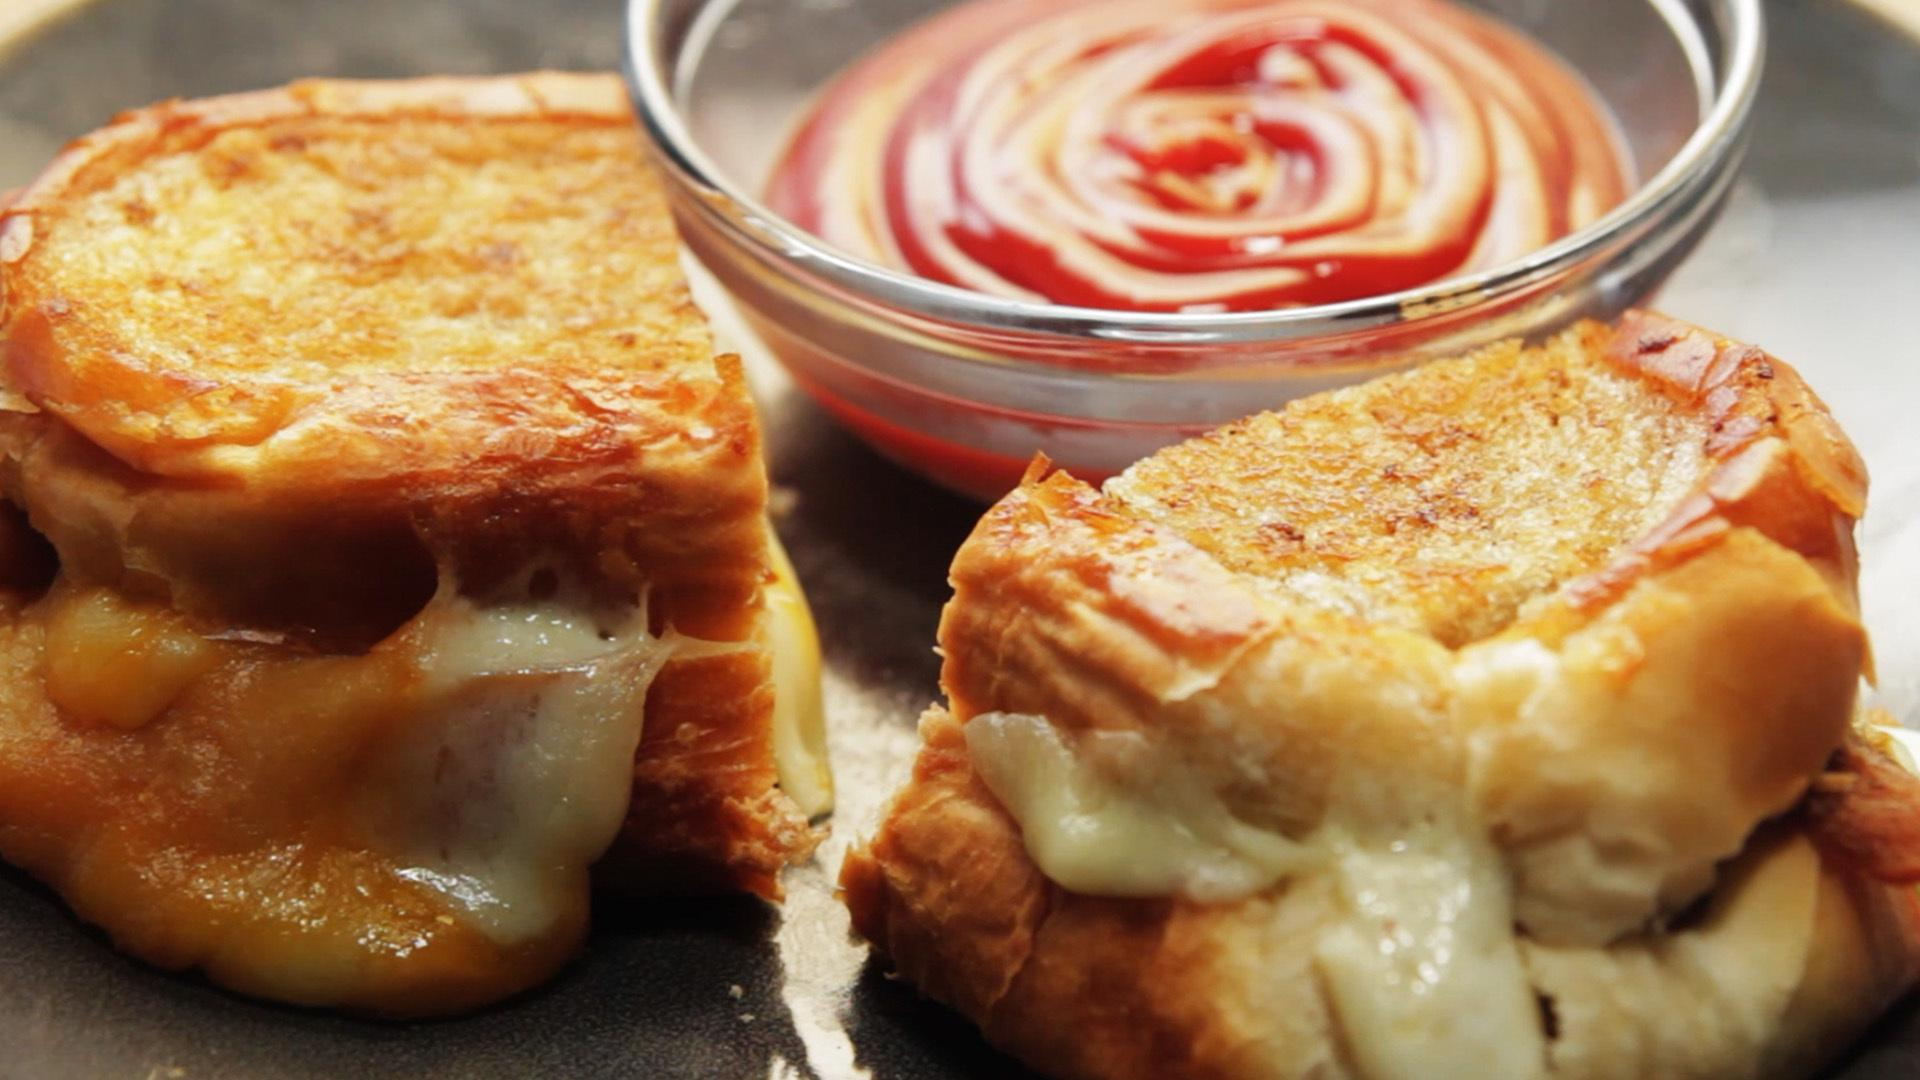 Fried Cheese Curd Grilled Cheese - Gormet Twist On a Comfort Classic